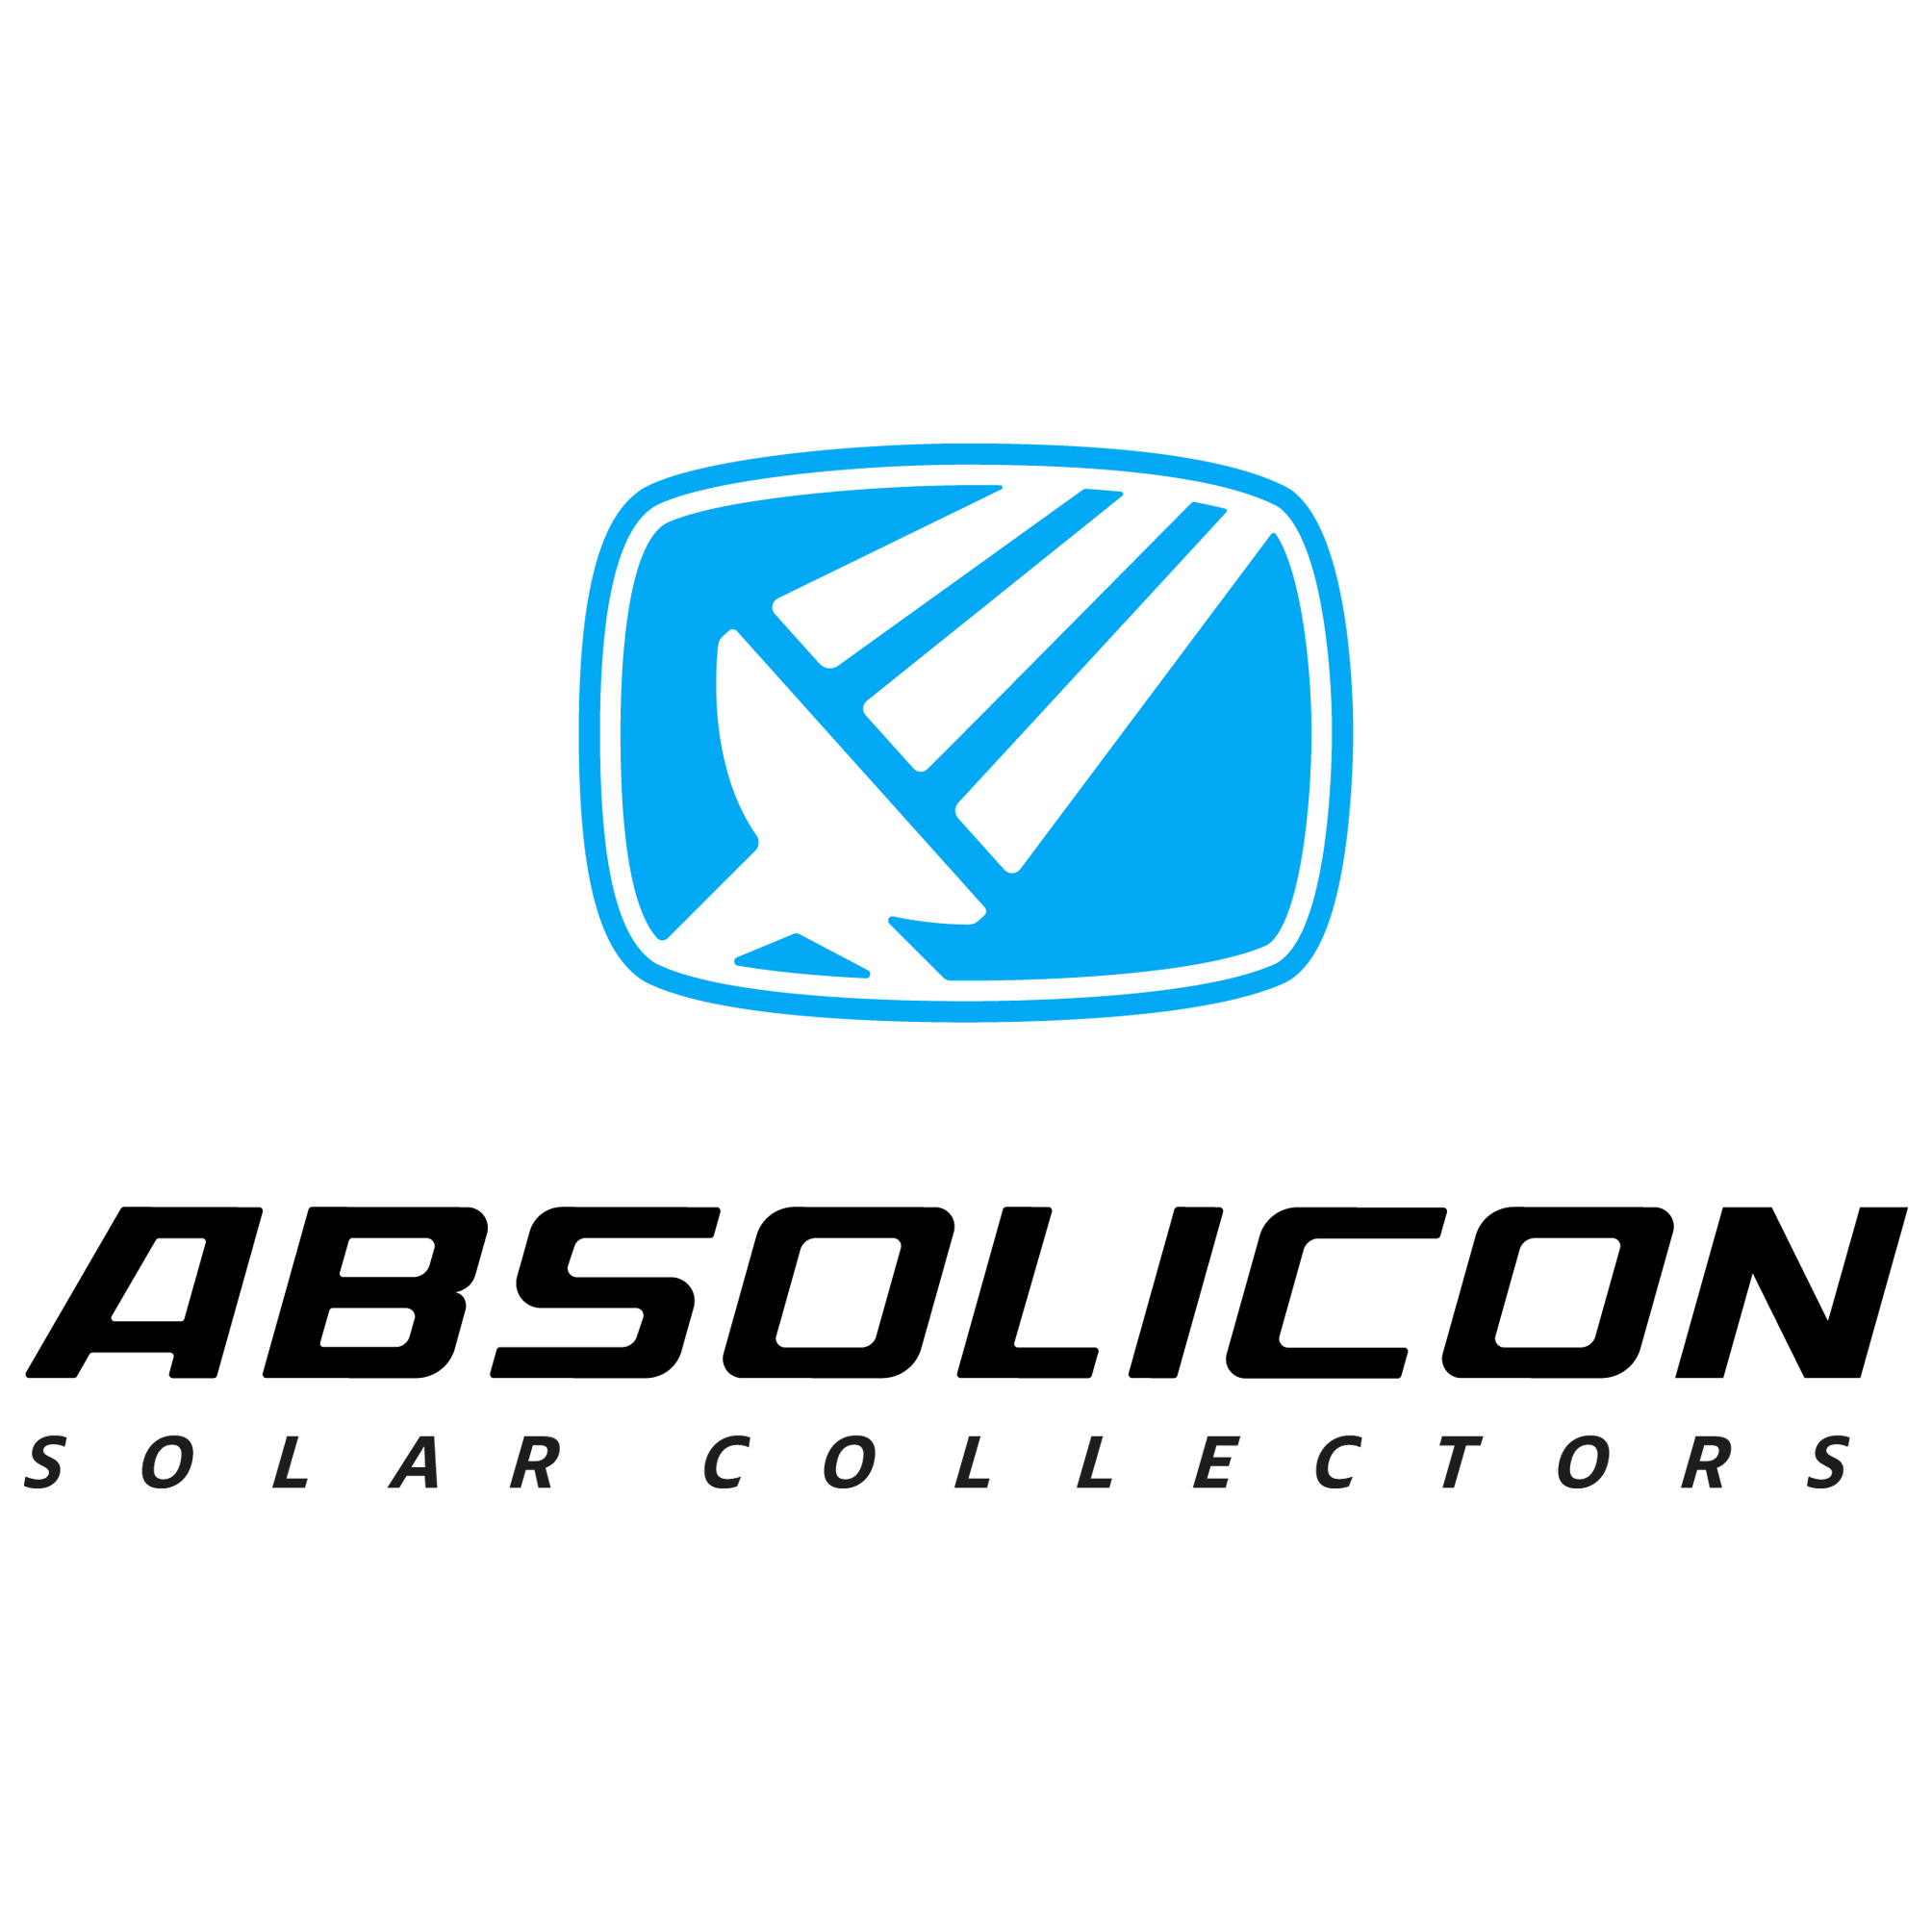 Absolicon Solar Collector AB Logotyp